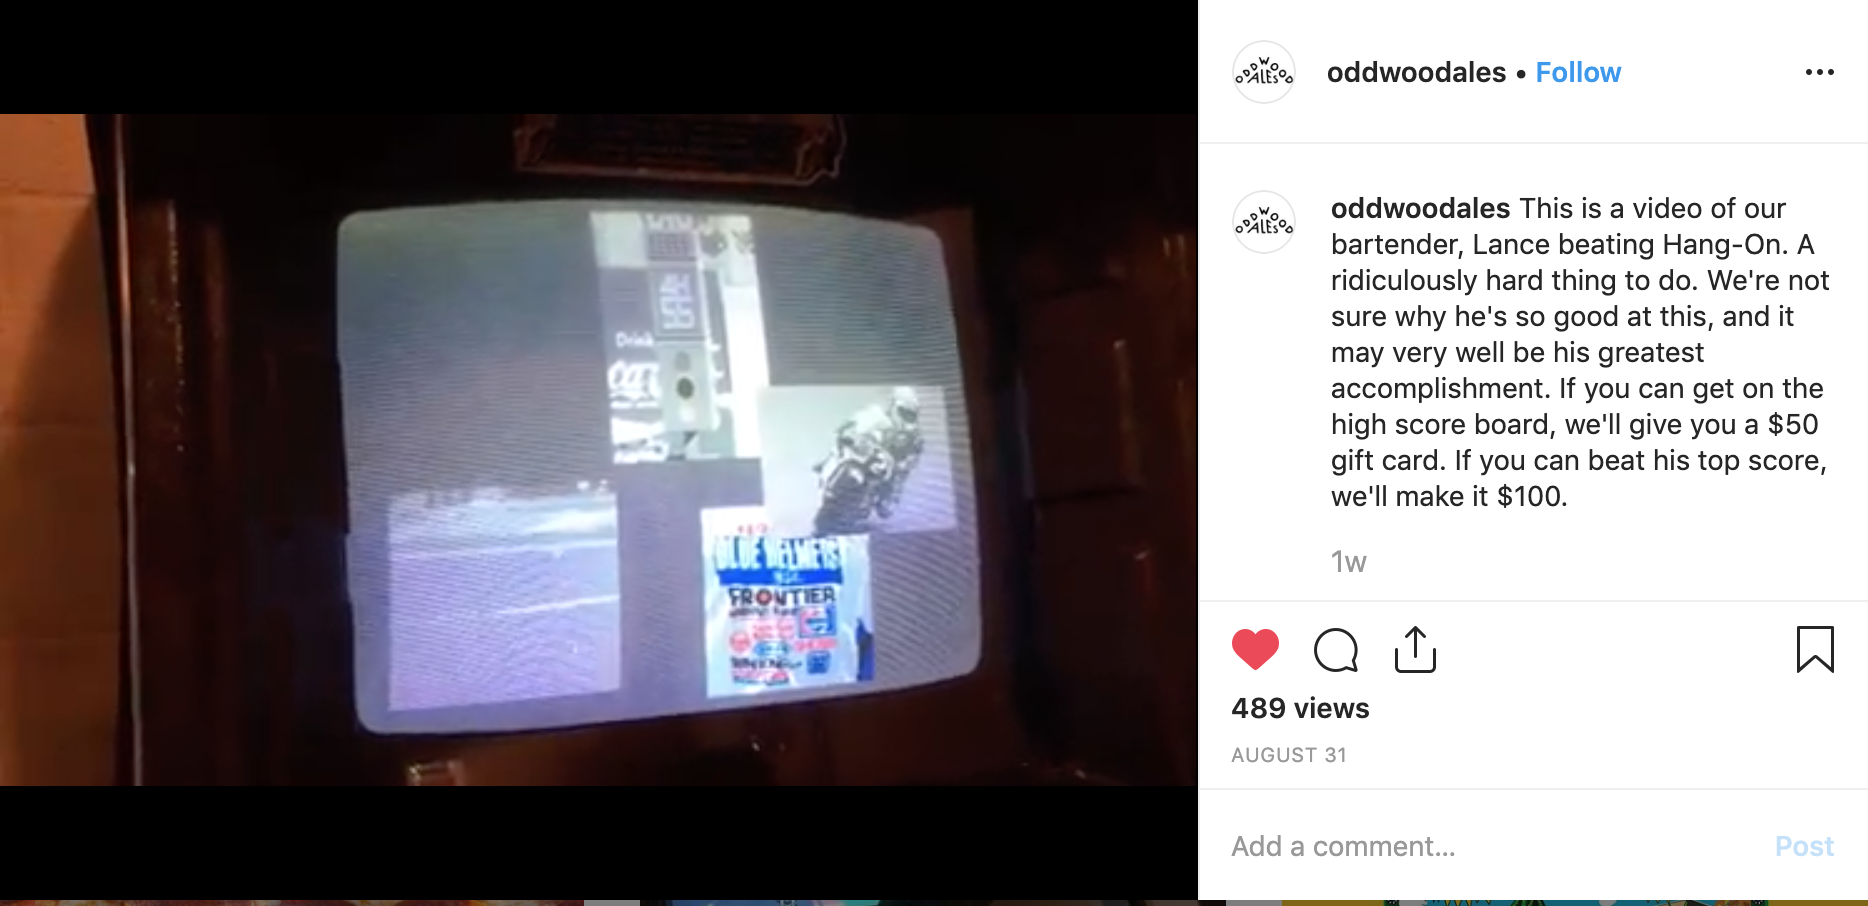 Instagram video posted by Oddwood Ales 8/31/19 .